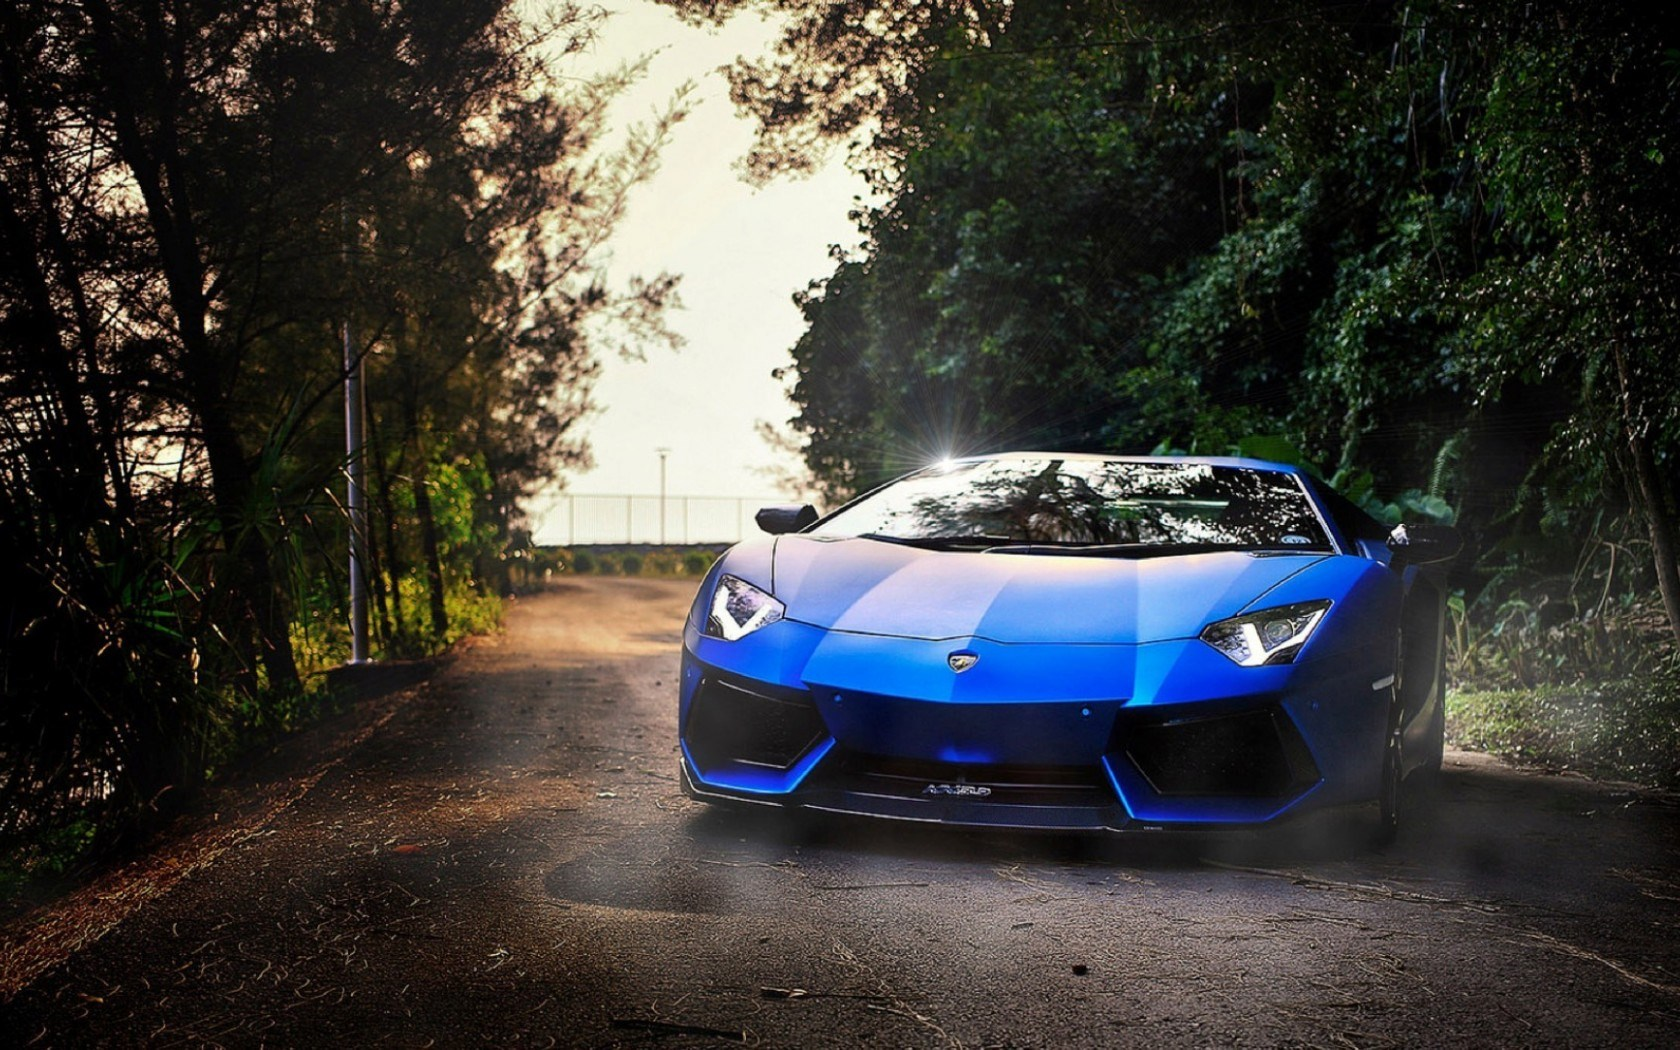 Lambo Wallpaper Hd 1080p